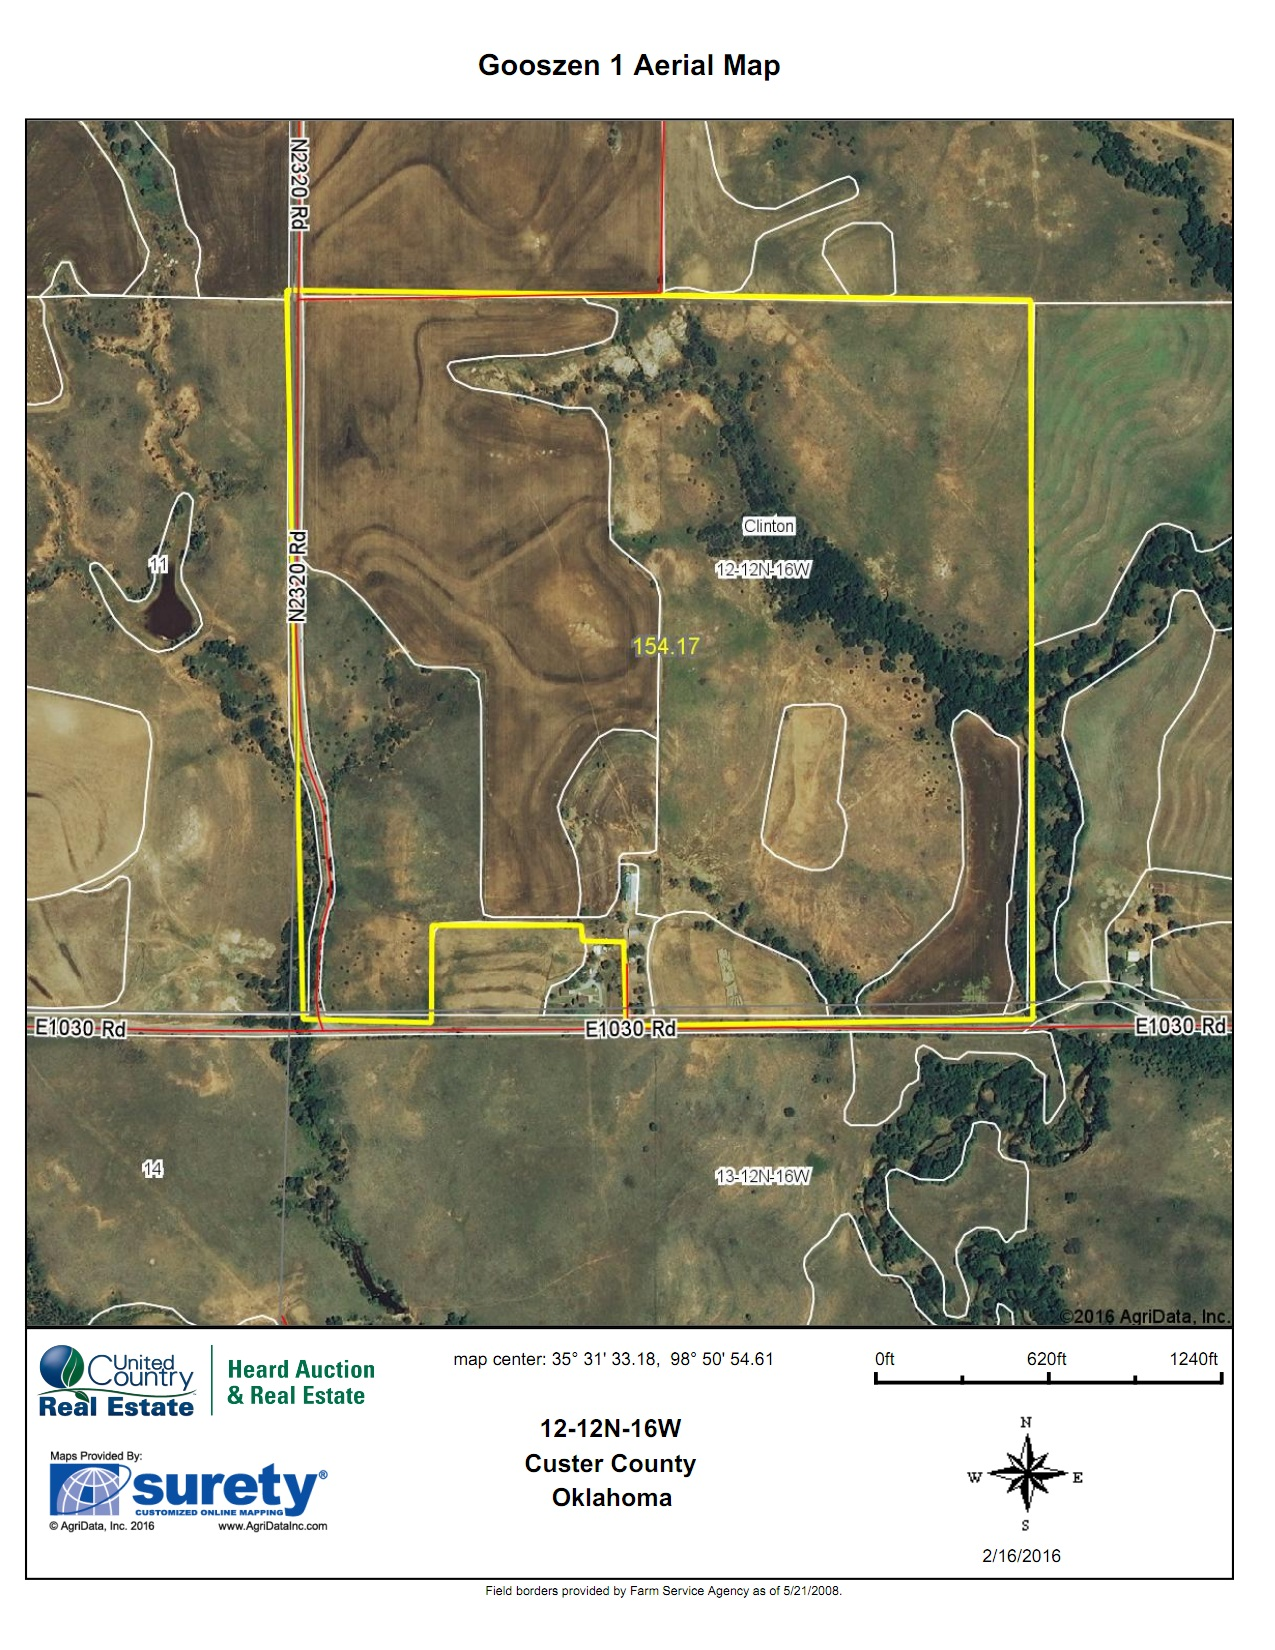 Oklahoma Farm for Sale, Custer County, Tract 2